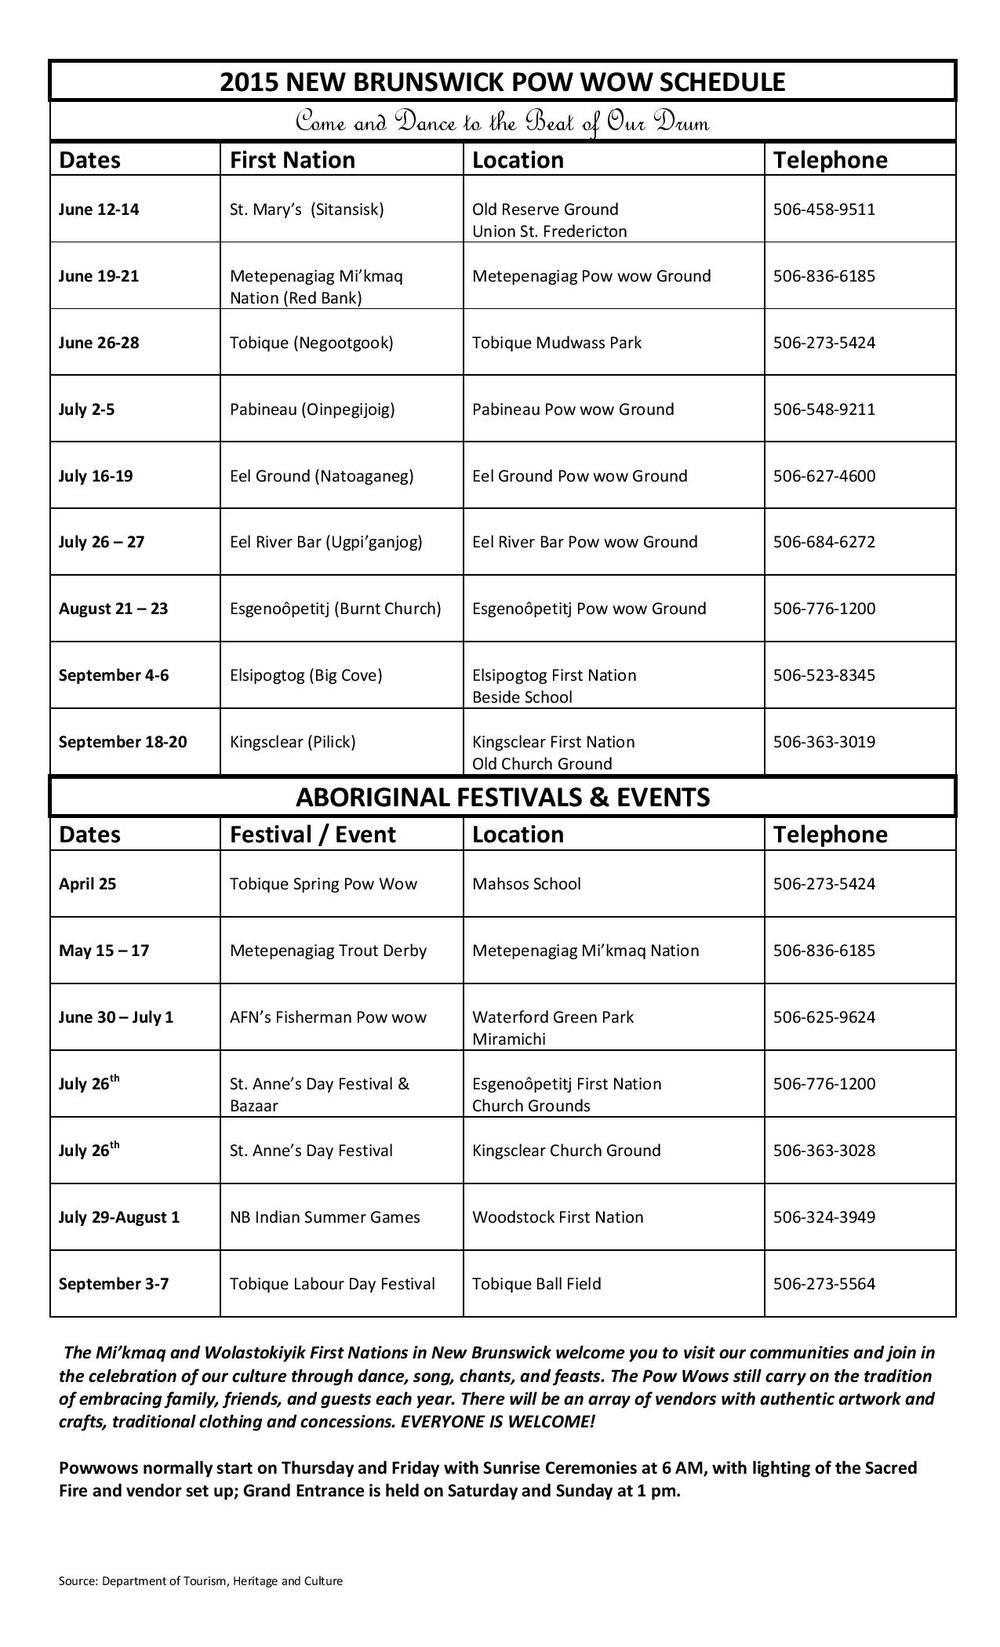 New Brunswick Pow Wow Schedule 2015